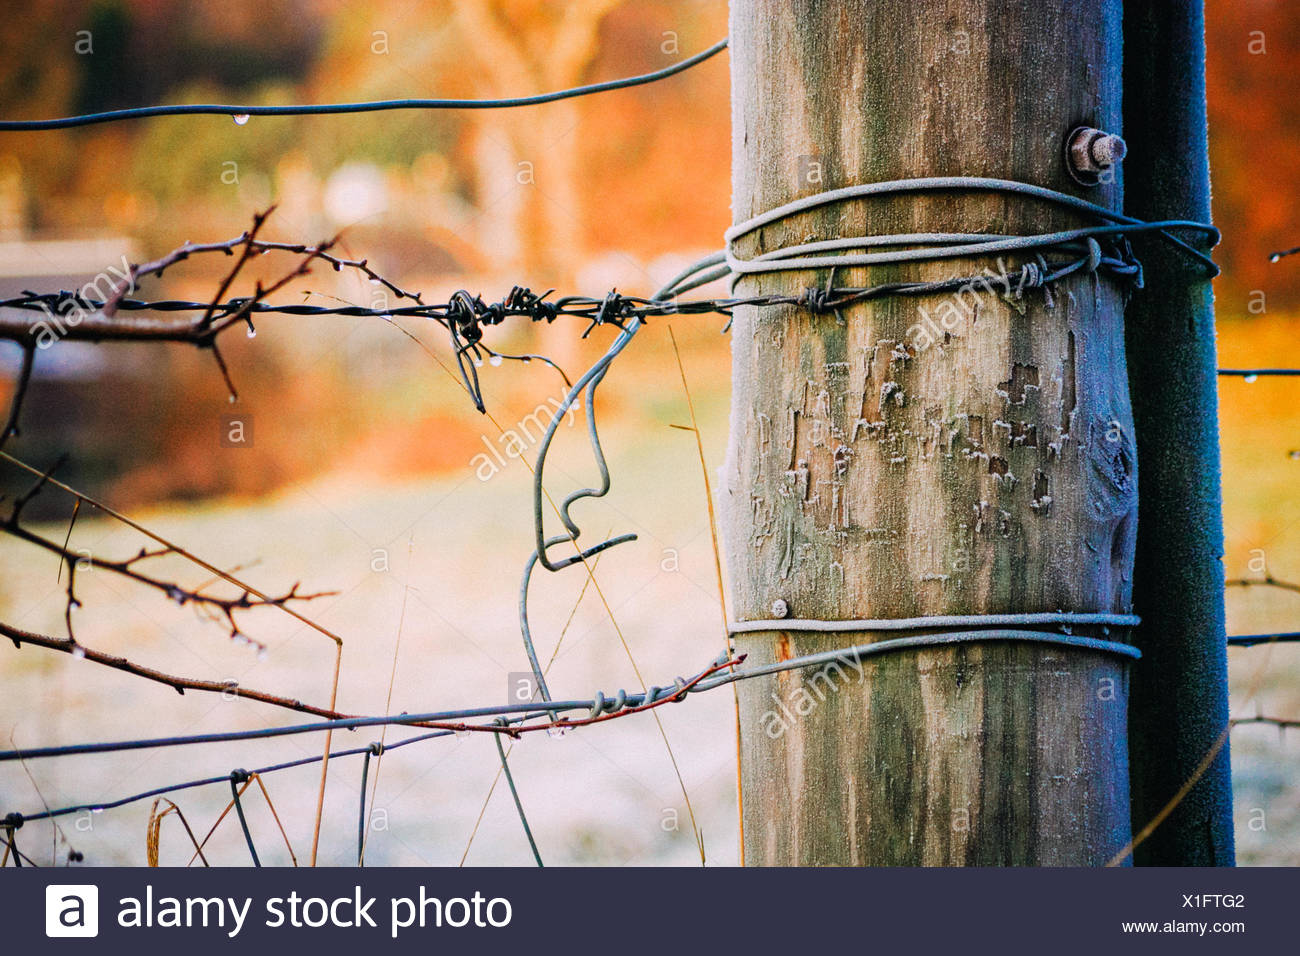 Close-Up Of Barbed Wire Fence With Wooden Post - Stock Image